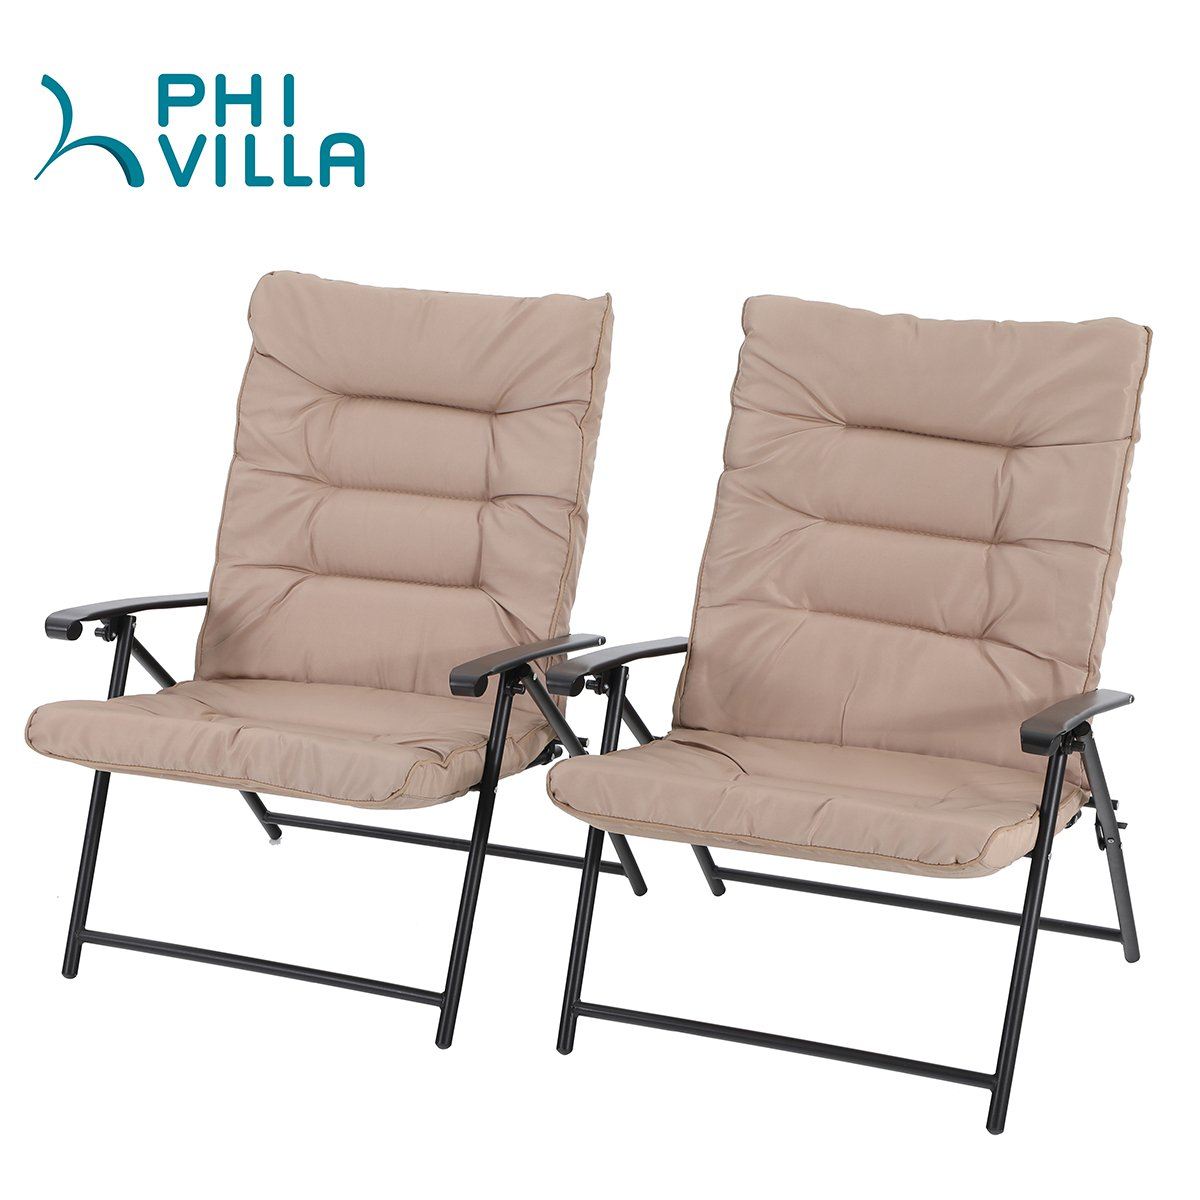 PHI VILLA Patio 3 PC Padded Folding Chair Set Adjustable Reclining 2 Position, Beige by PHI VILLA (Image #2)